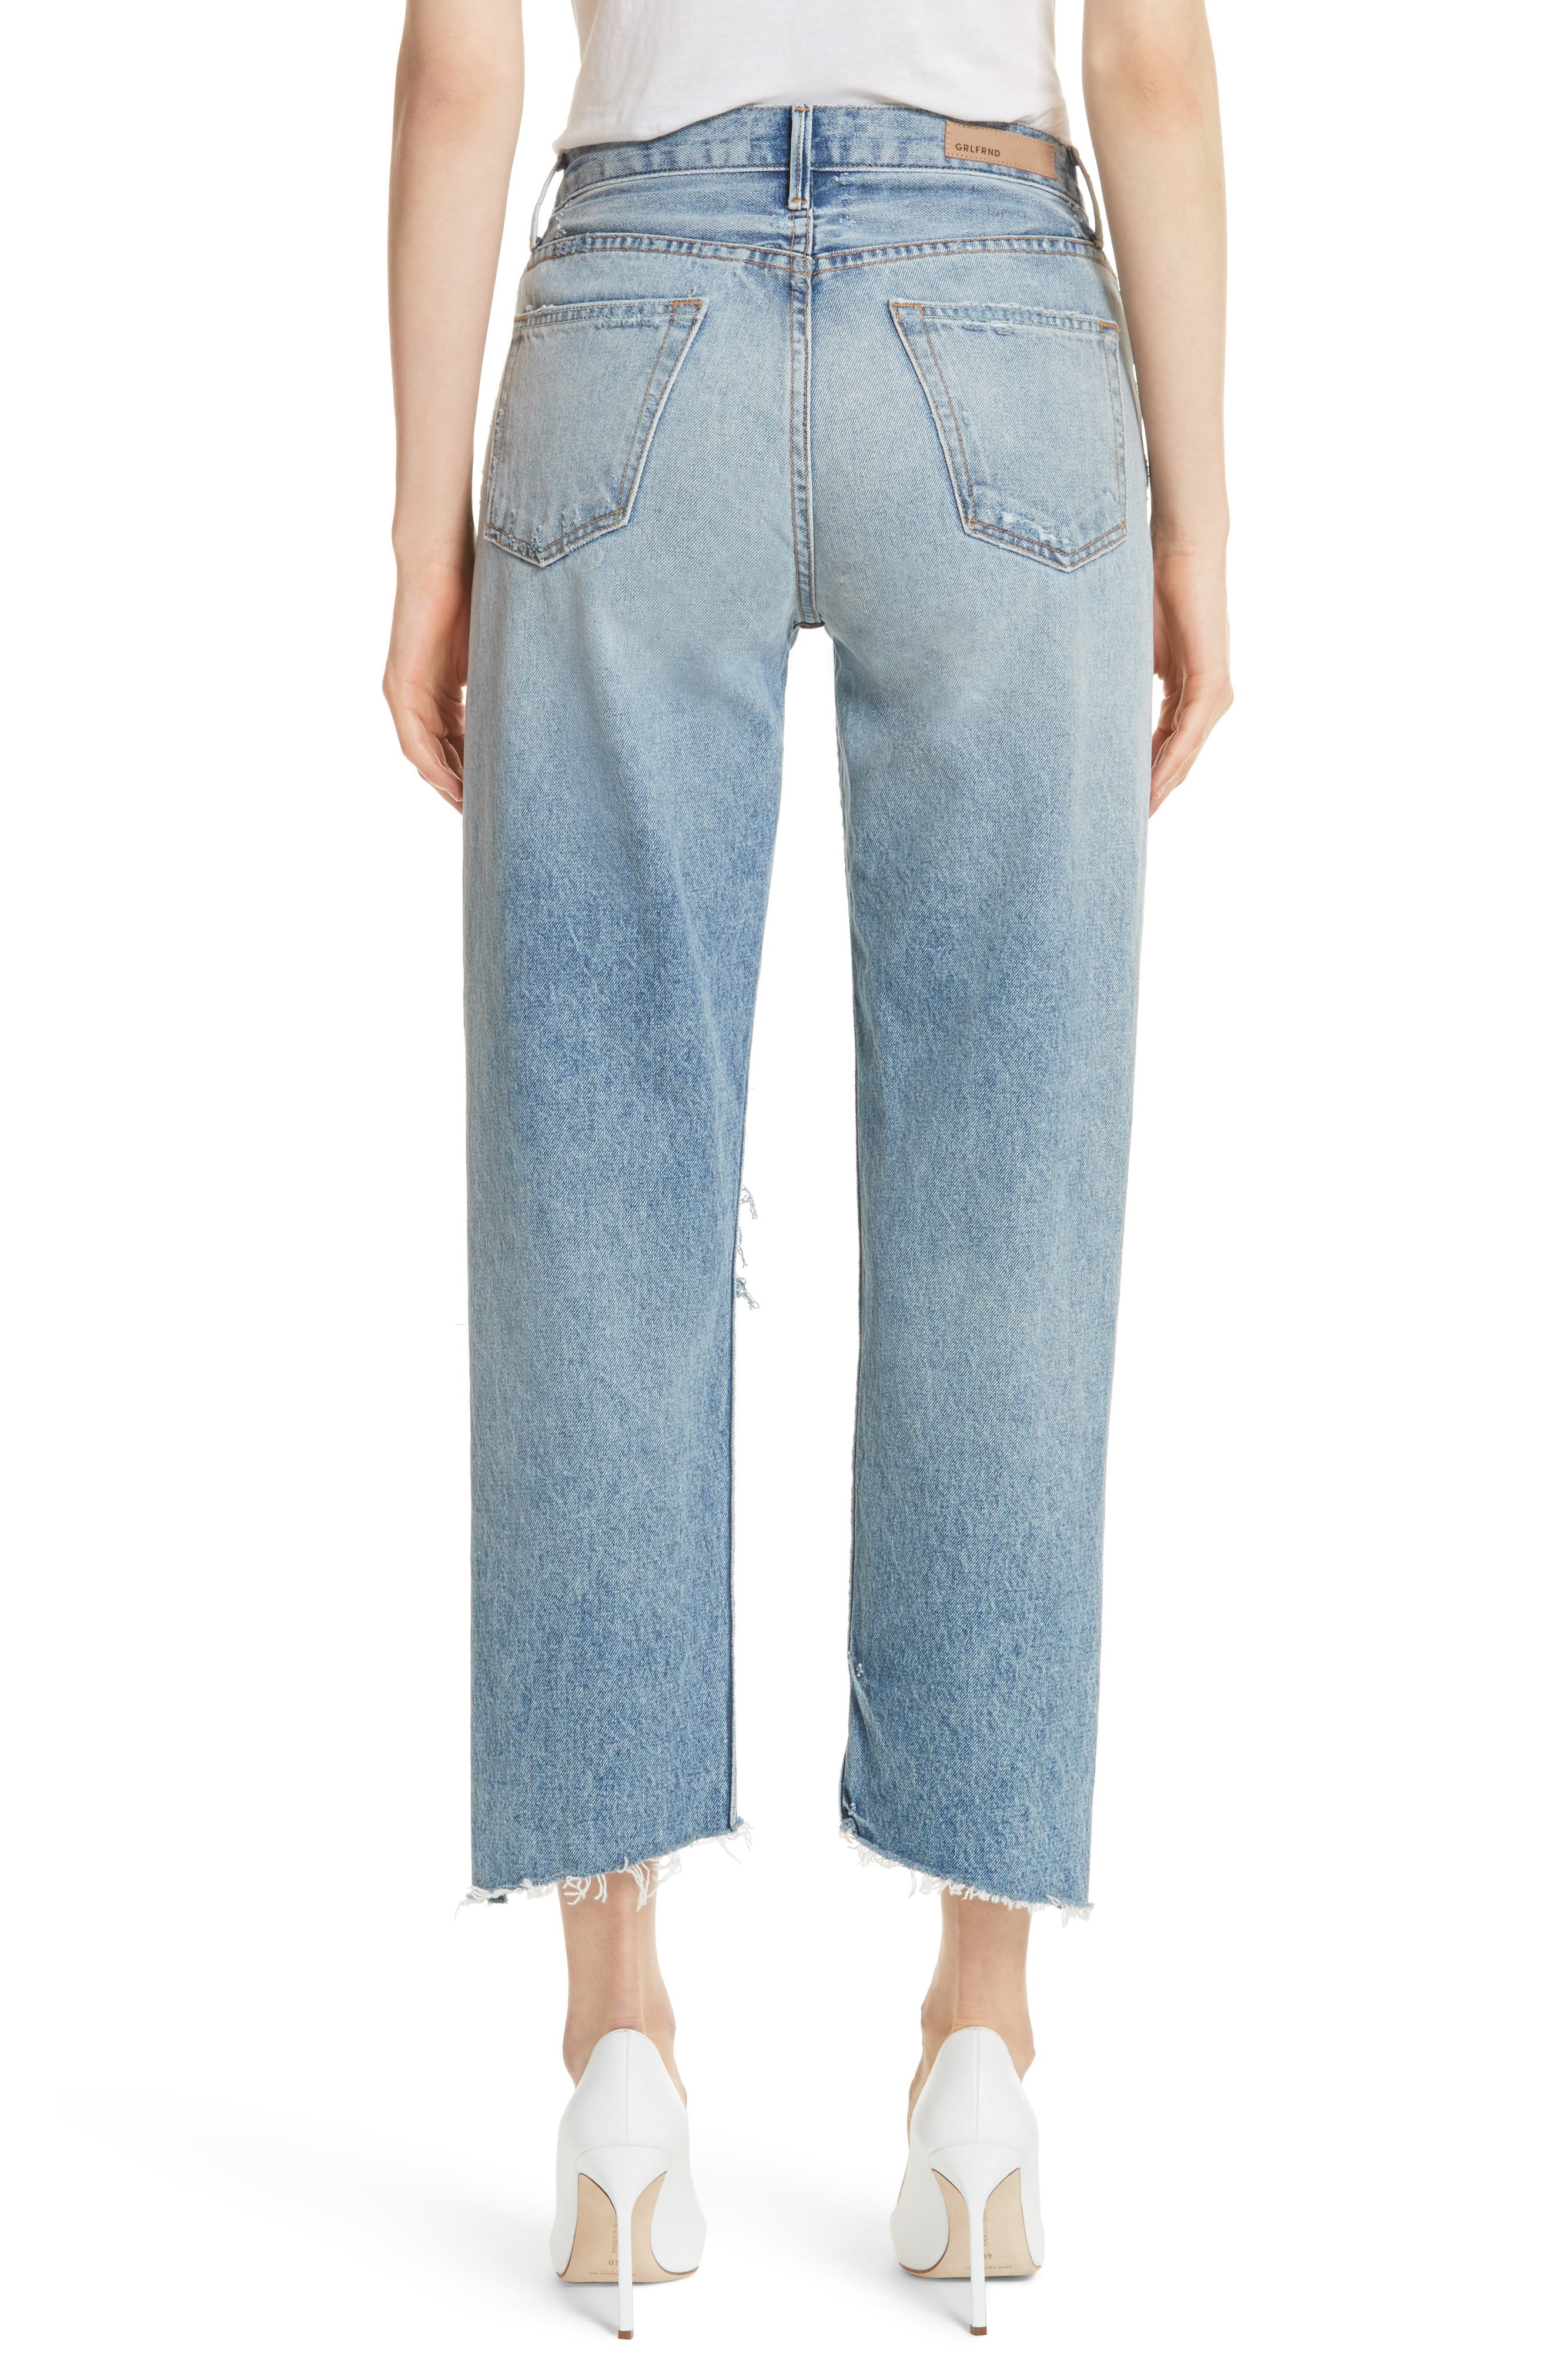 Helena Ripped Rigid High Waist Straight Jeans,                             Alternate thumbnail 2, color,                             470